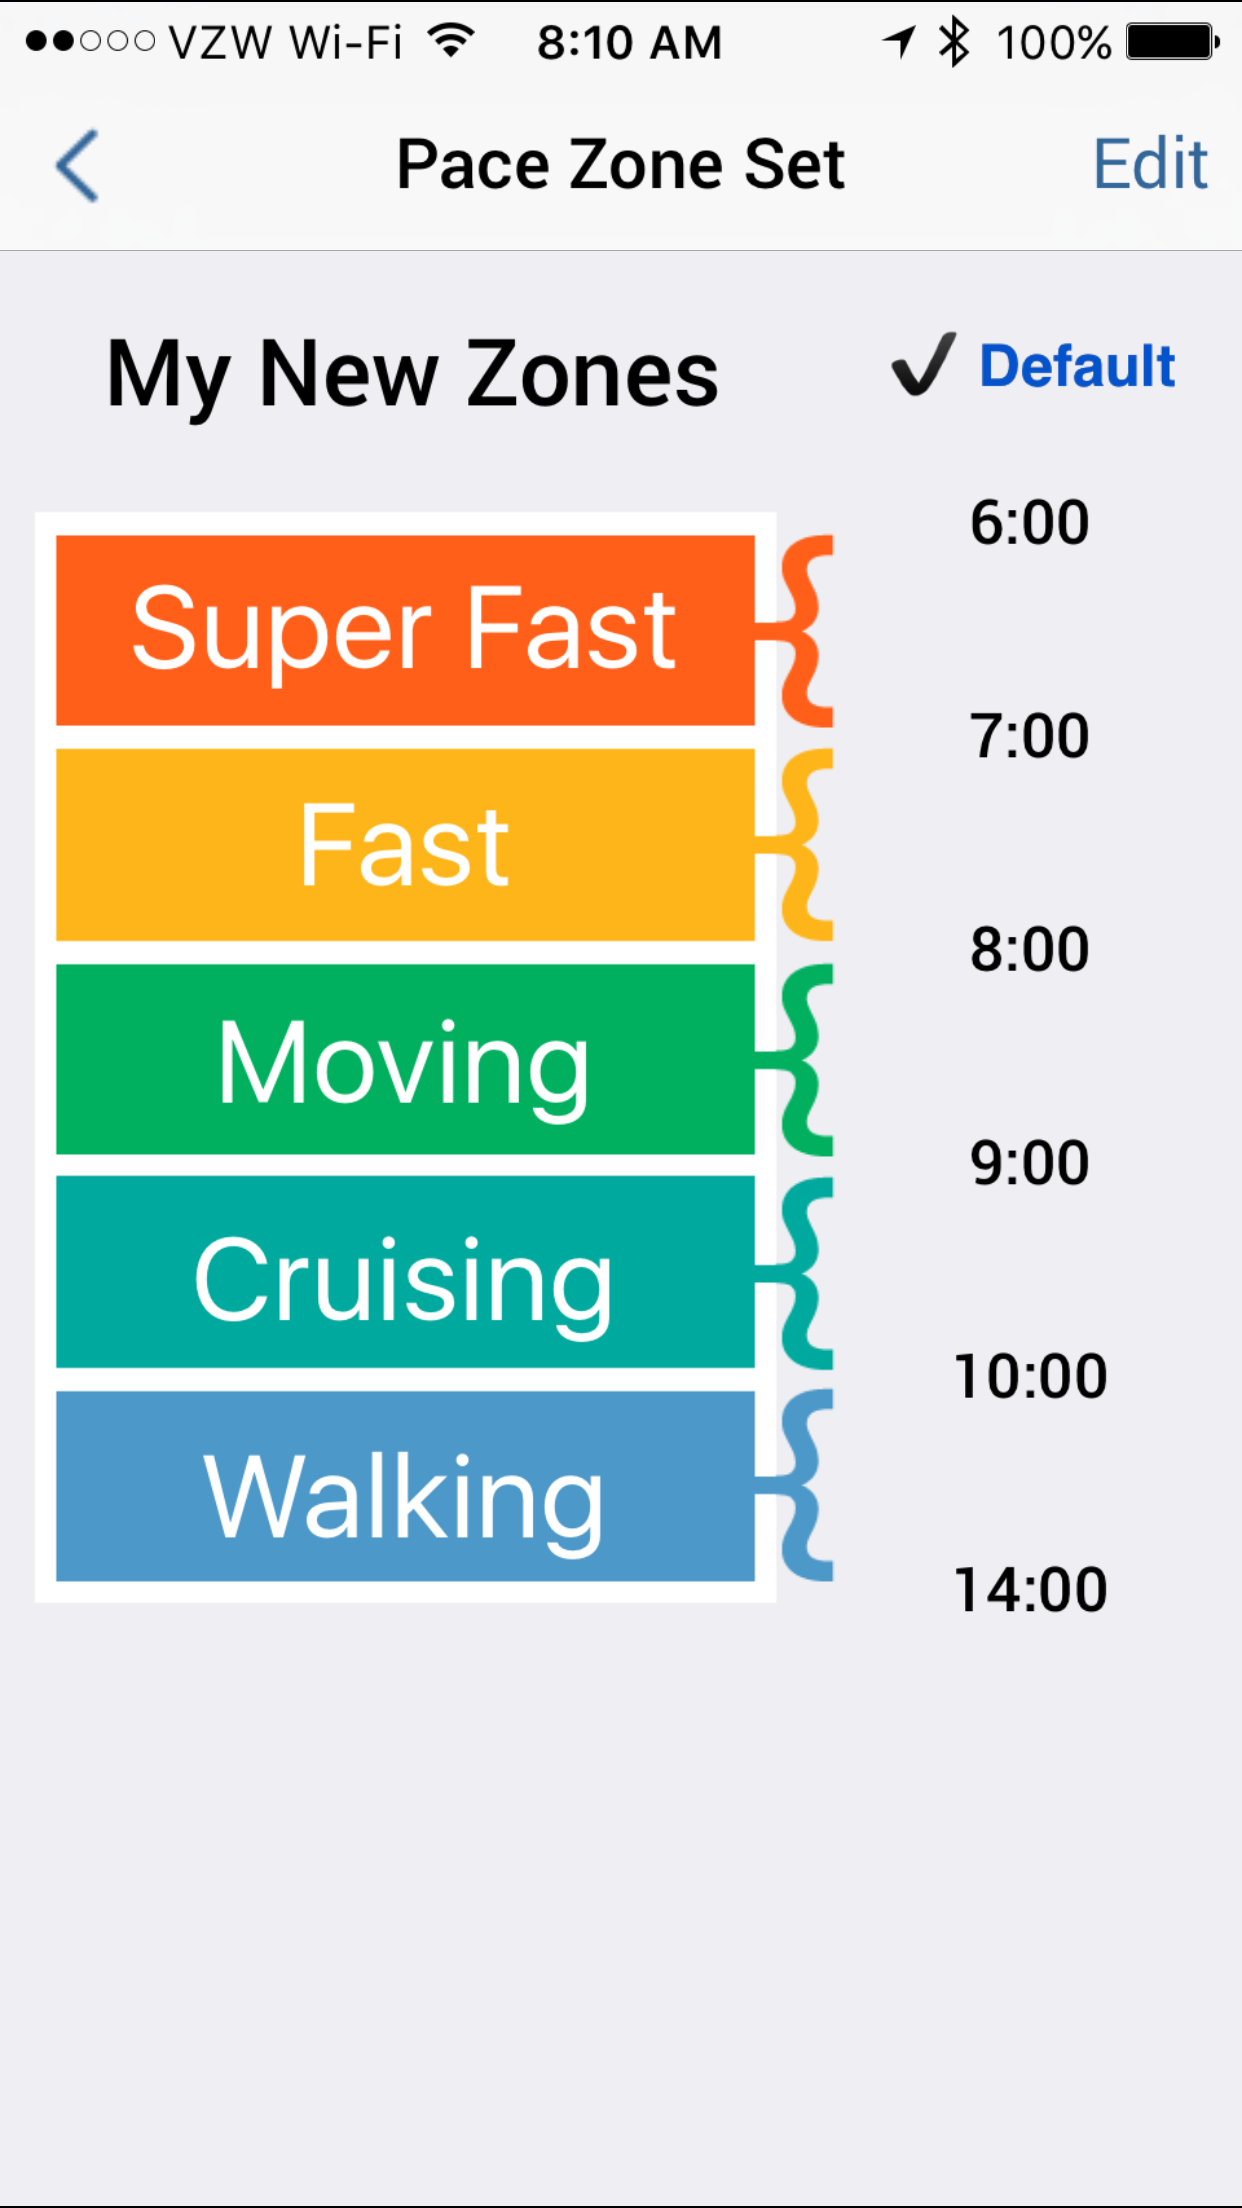 Create Custom Pace Zones for Interval Structured Workouts